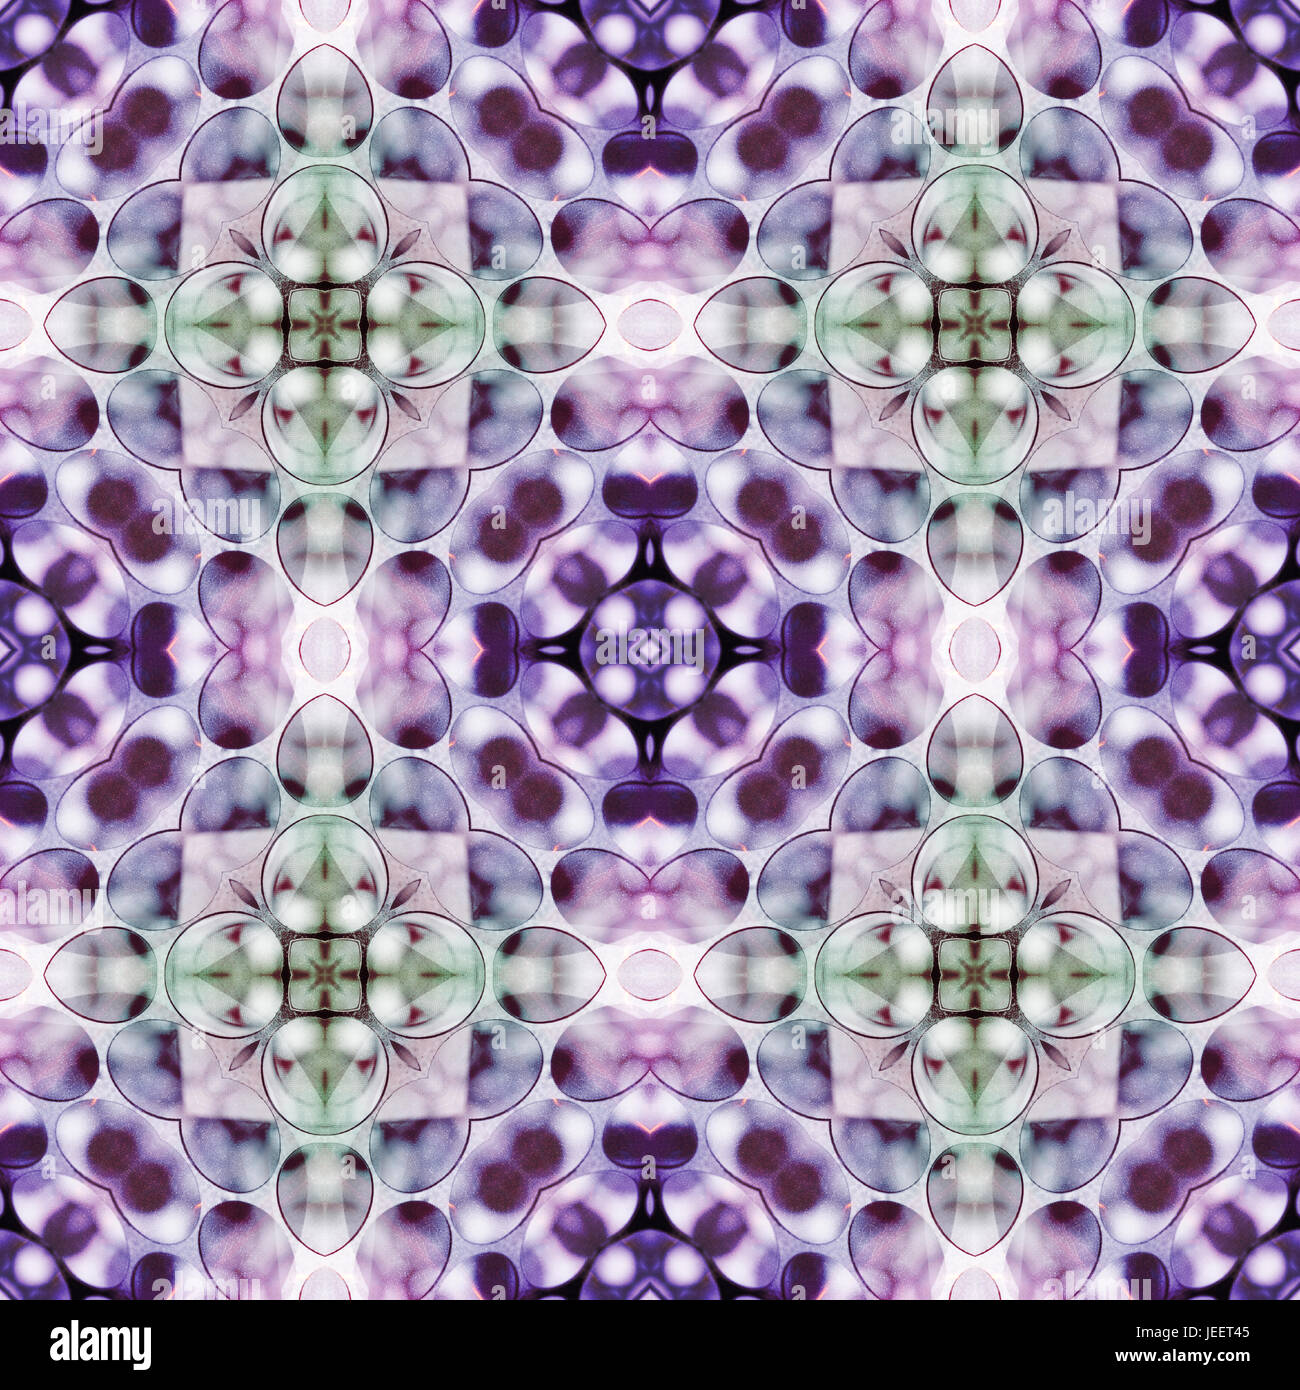 Abstract seamlessly repeating  wallpaper pattern. - Stock Image